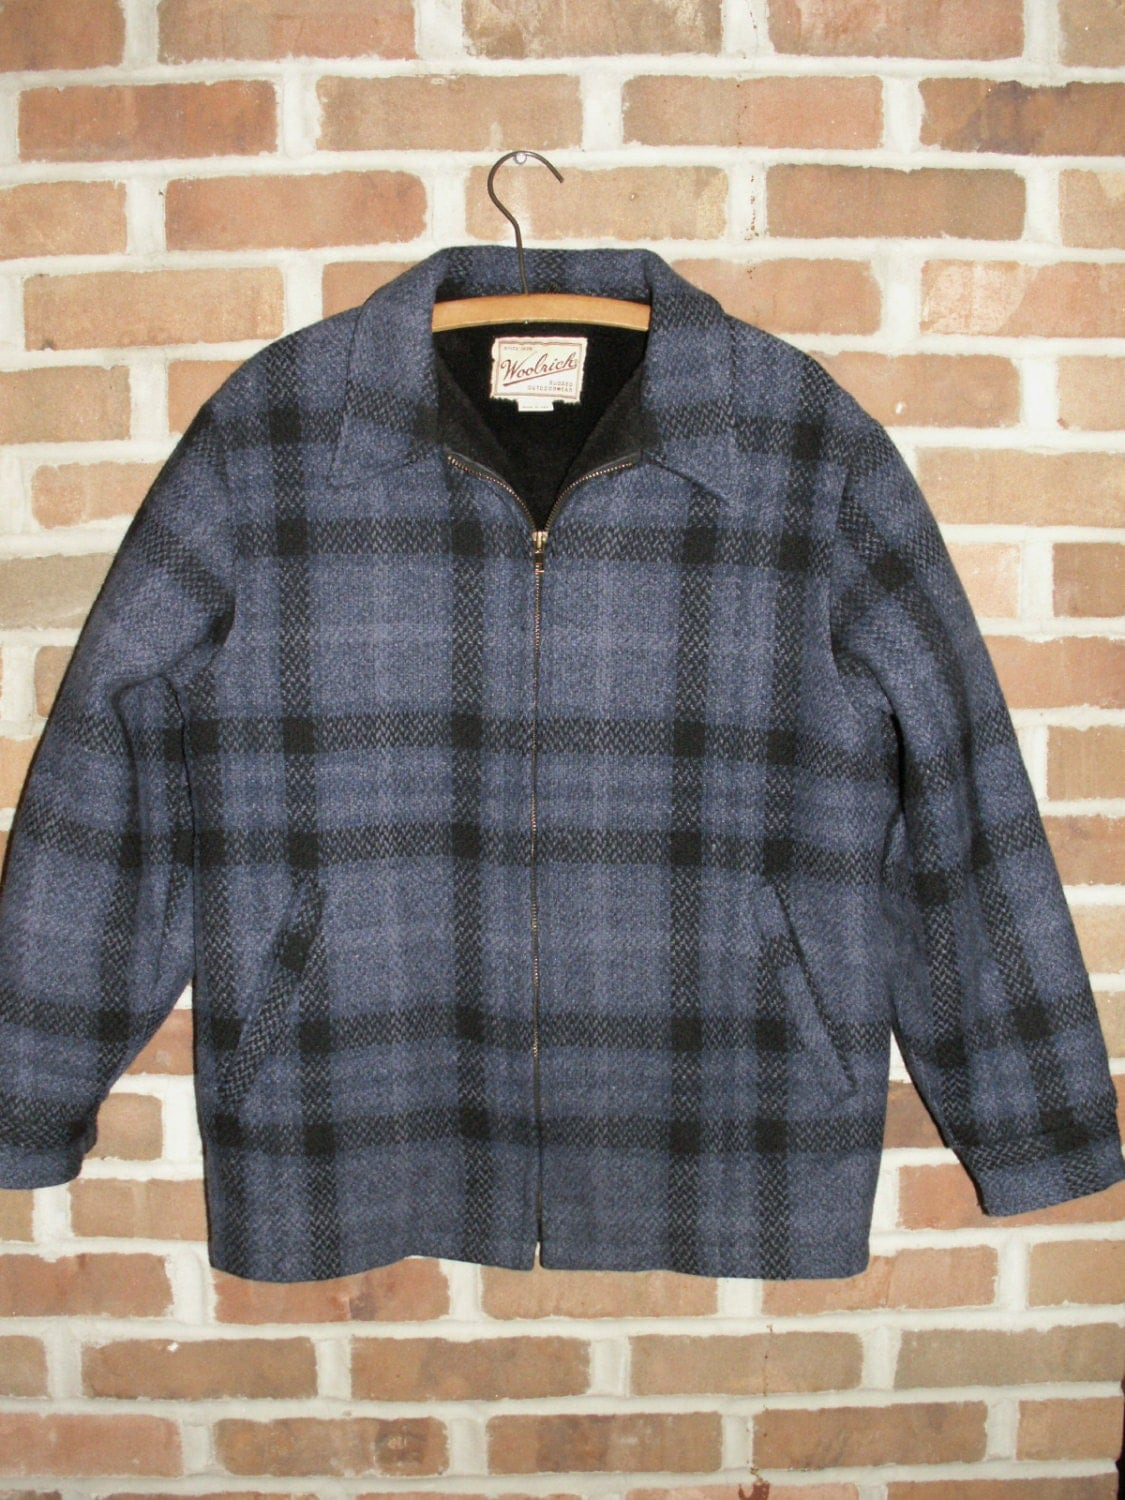 sale woolrich blue black plaid jacket by rehang on etsy. Black Bedroom Furniture Sets. Home Design Ideas